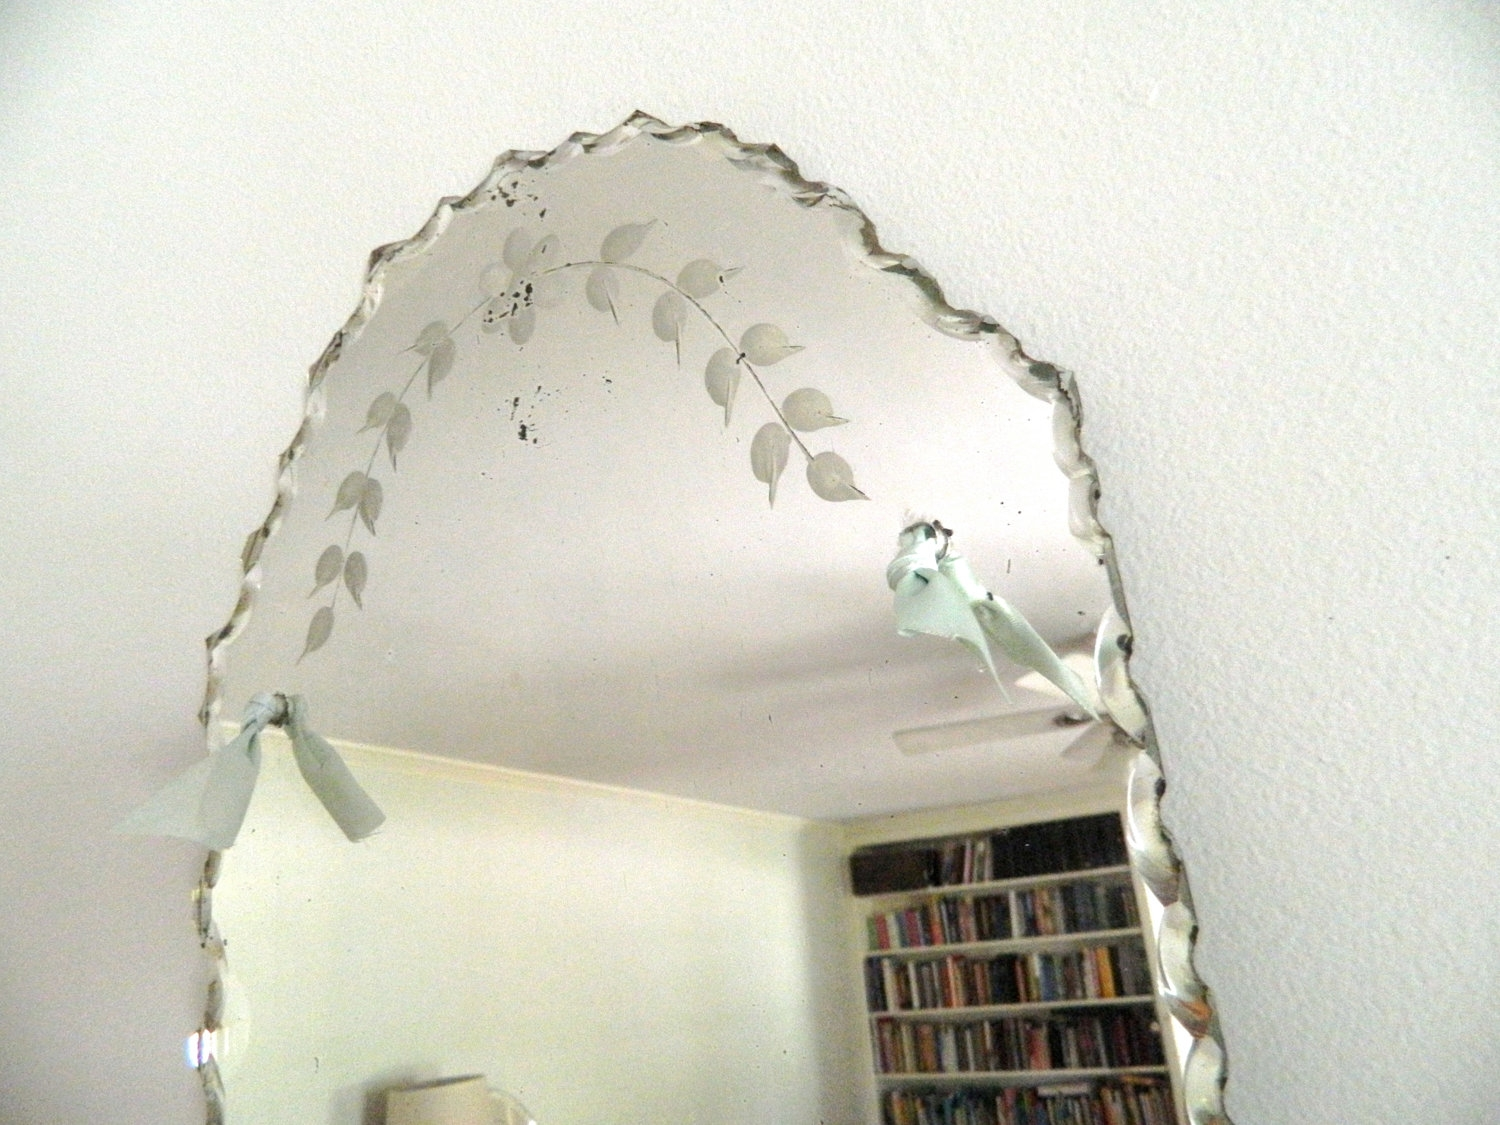 Vintage Etched Beveled Mirror Frameless Within Vintage Frameless Mirrors (Image 14 of 15)